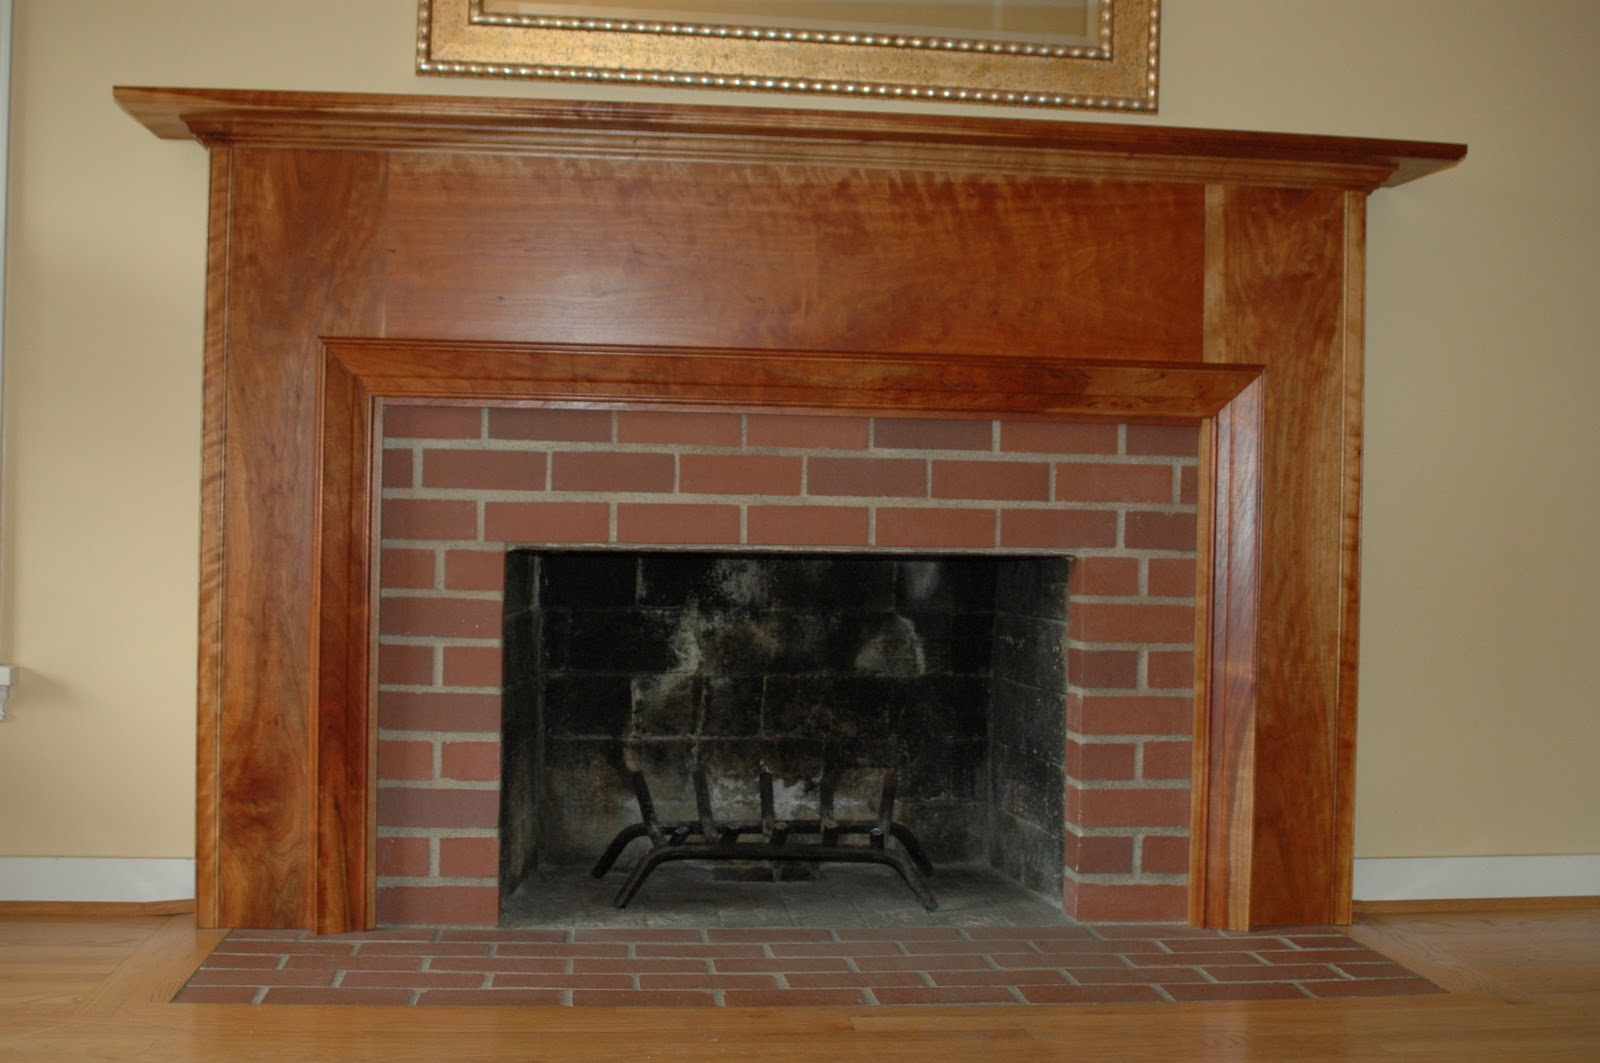 johnschmidtwoodworking fireplace mantel